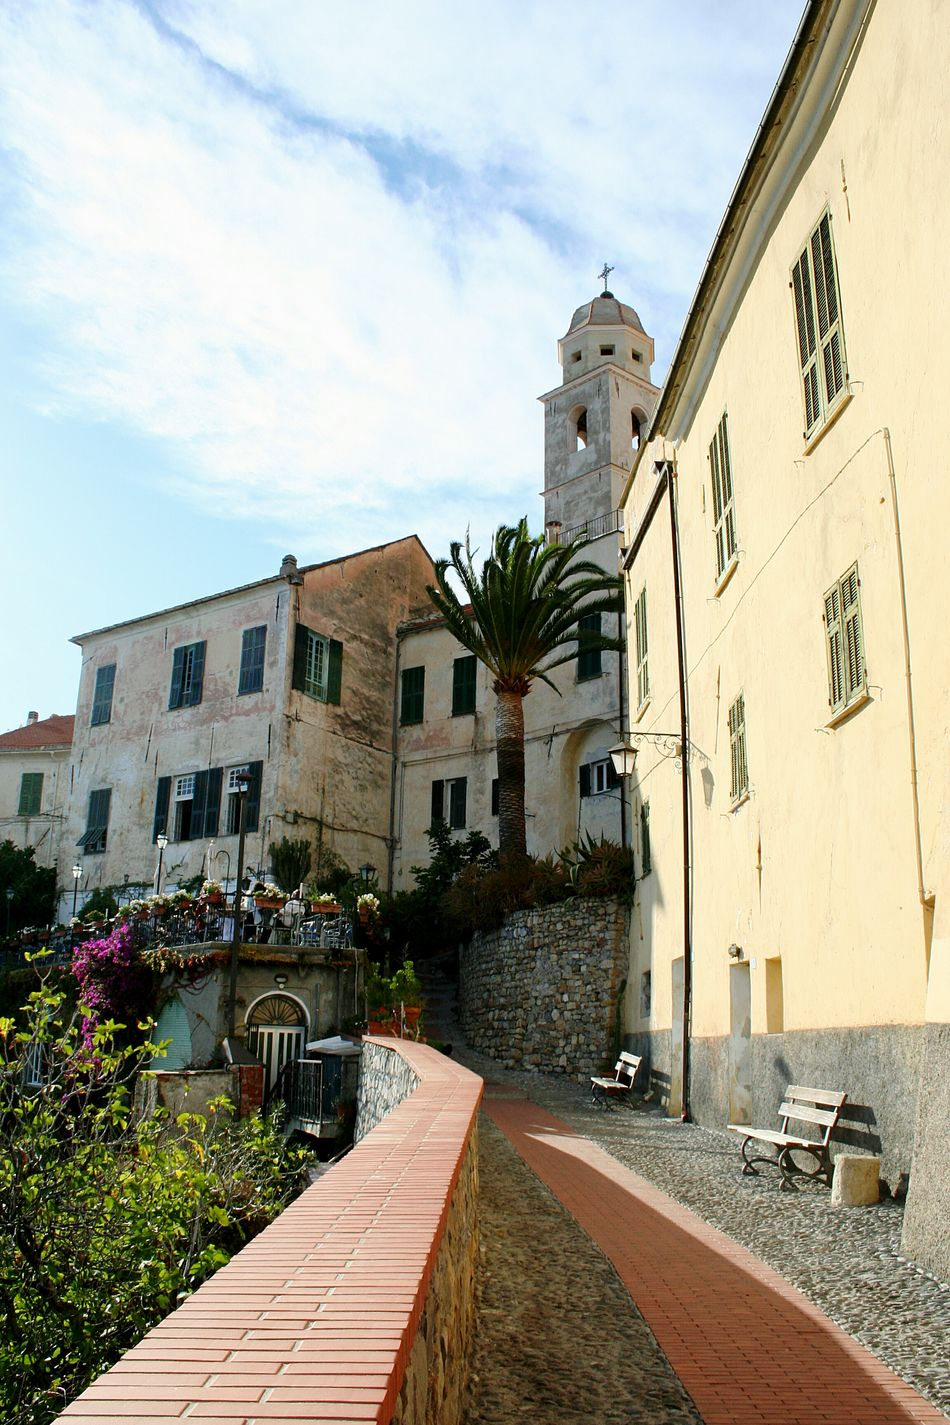 Building Exterior Architecture Street Built Structure Outdoors Sky No People Cloud - Sky Day Medieval Italian Village  Mediterranean Village Liguria,Italy Travel Destinations Sunlight Growth Cervo Ligure Tourism TravelBlooming In The Street Vicolo Del Paese Narrow Street Mediterranean Mood